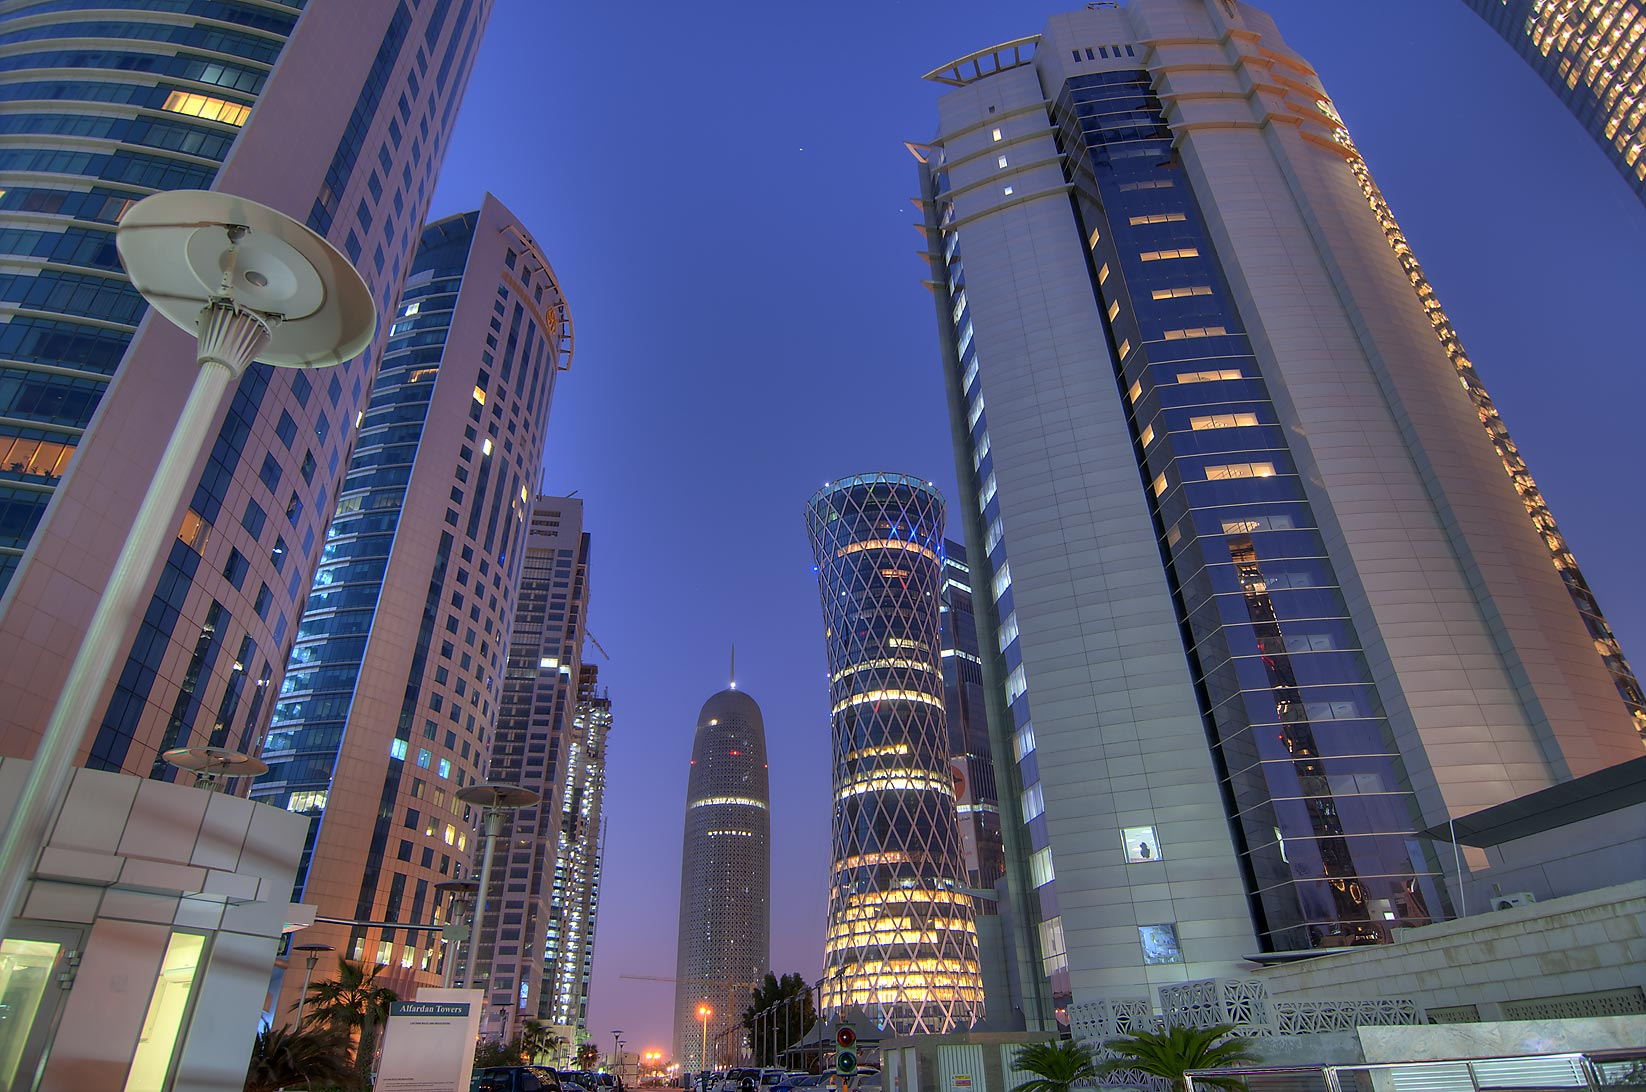 Parking of Al Fardan towers in West Bay. Doha, Qatar